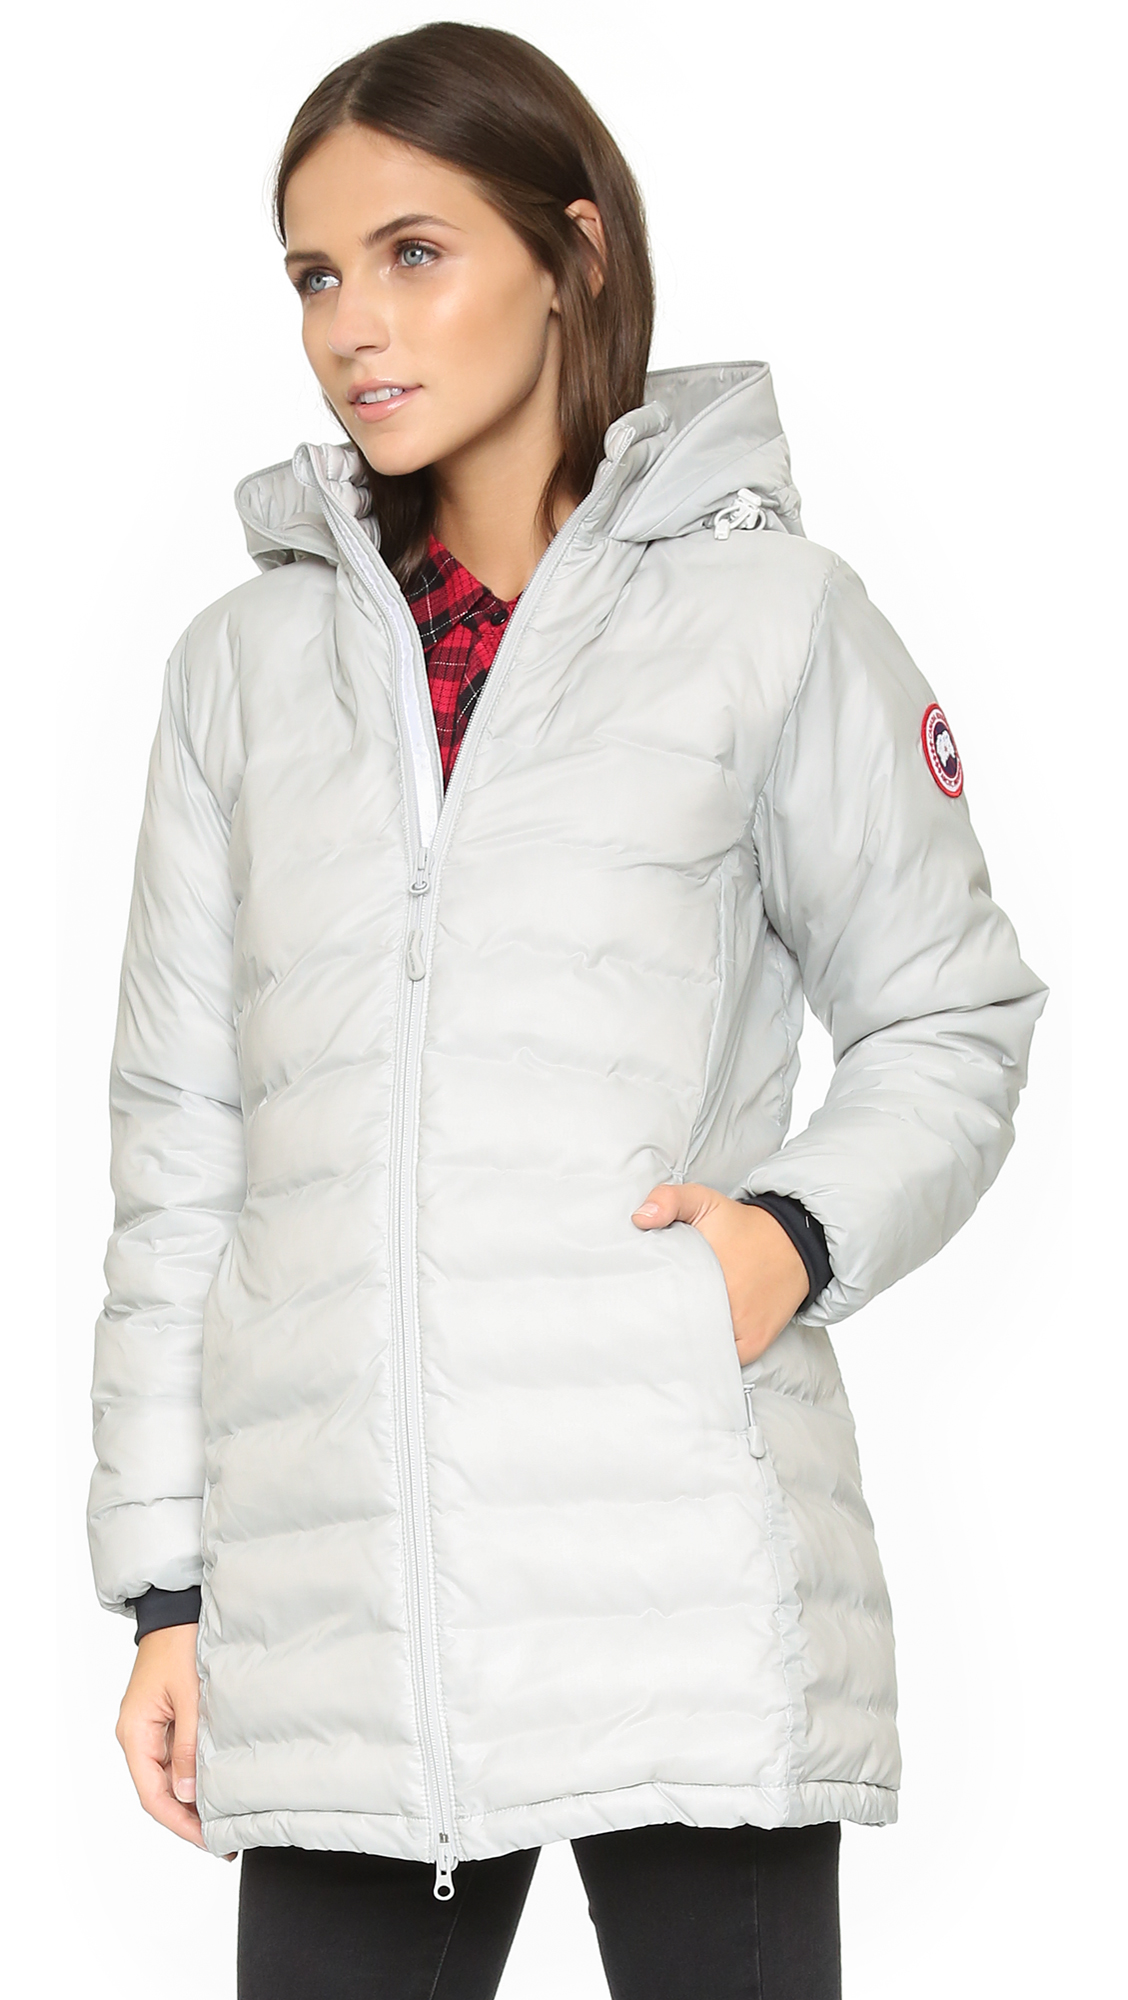 Canada Goose kids outlet discounts - Canada Goose Camp Hooded Jacket | SHOPBOP